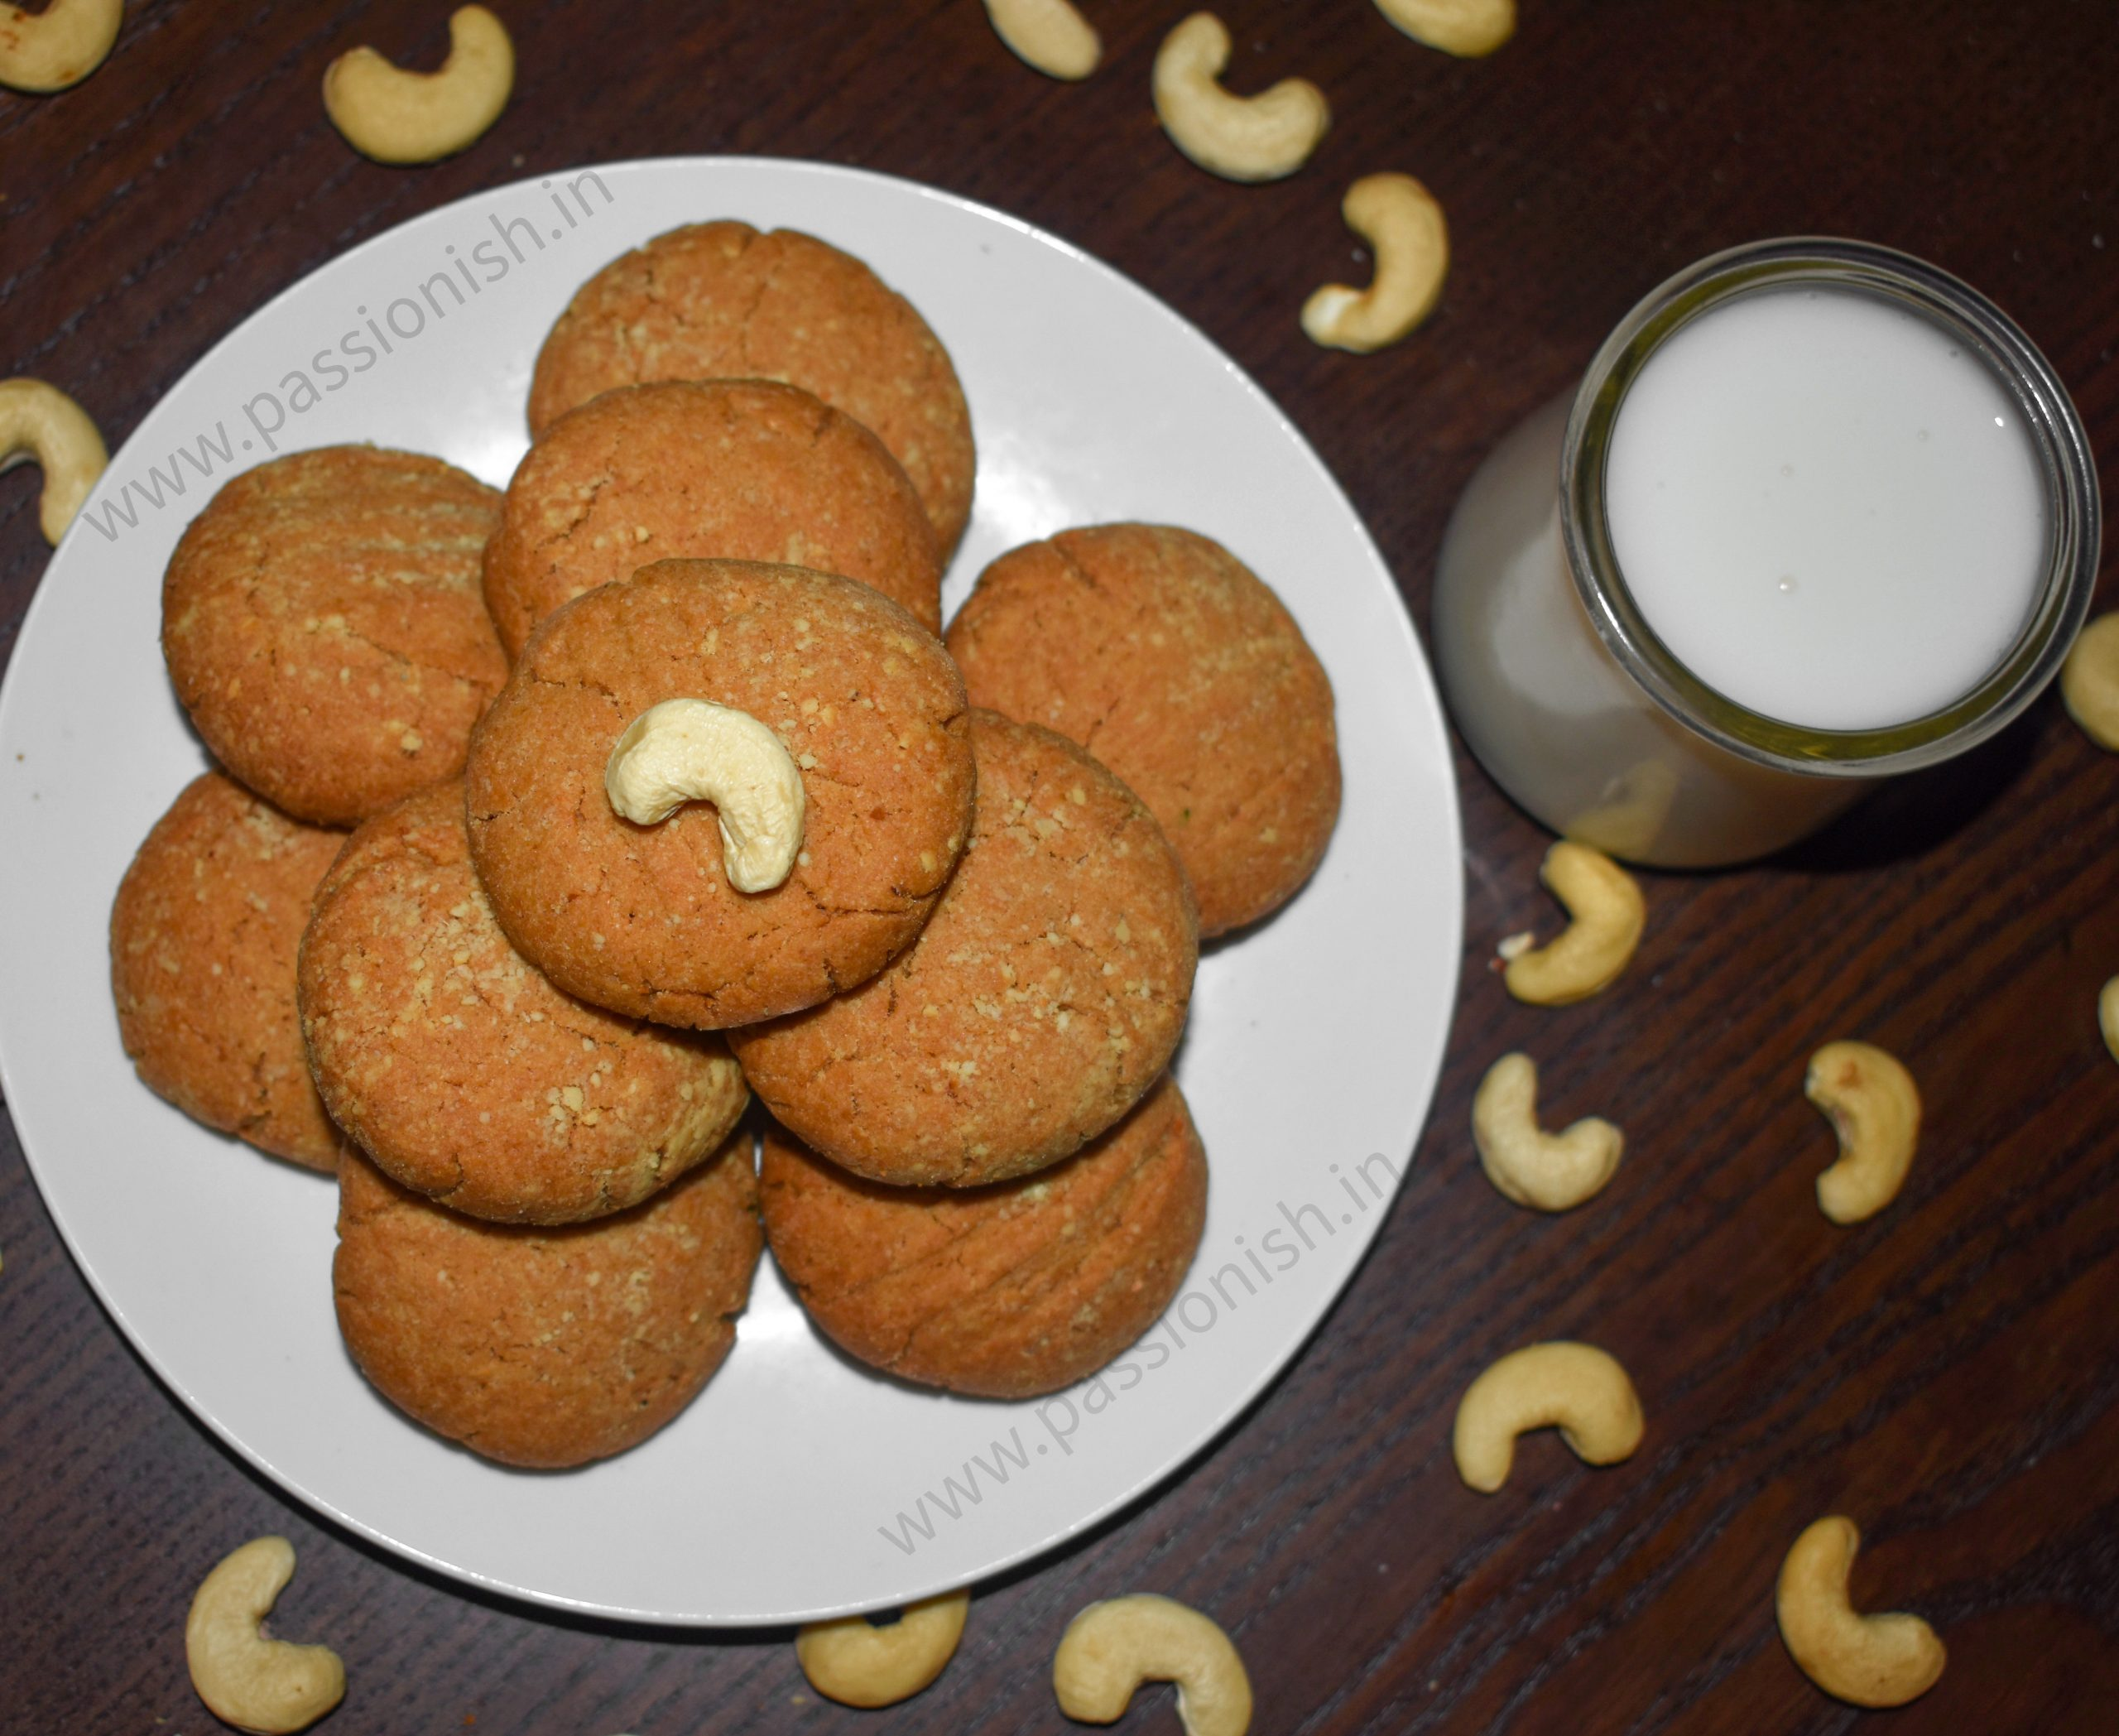 Whole Wheat Butter Cookies or Butter Biscuits